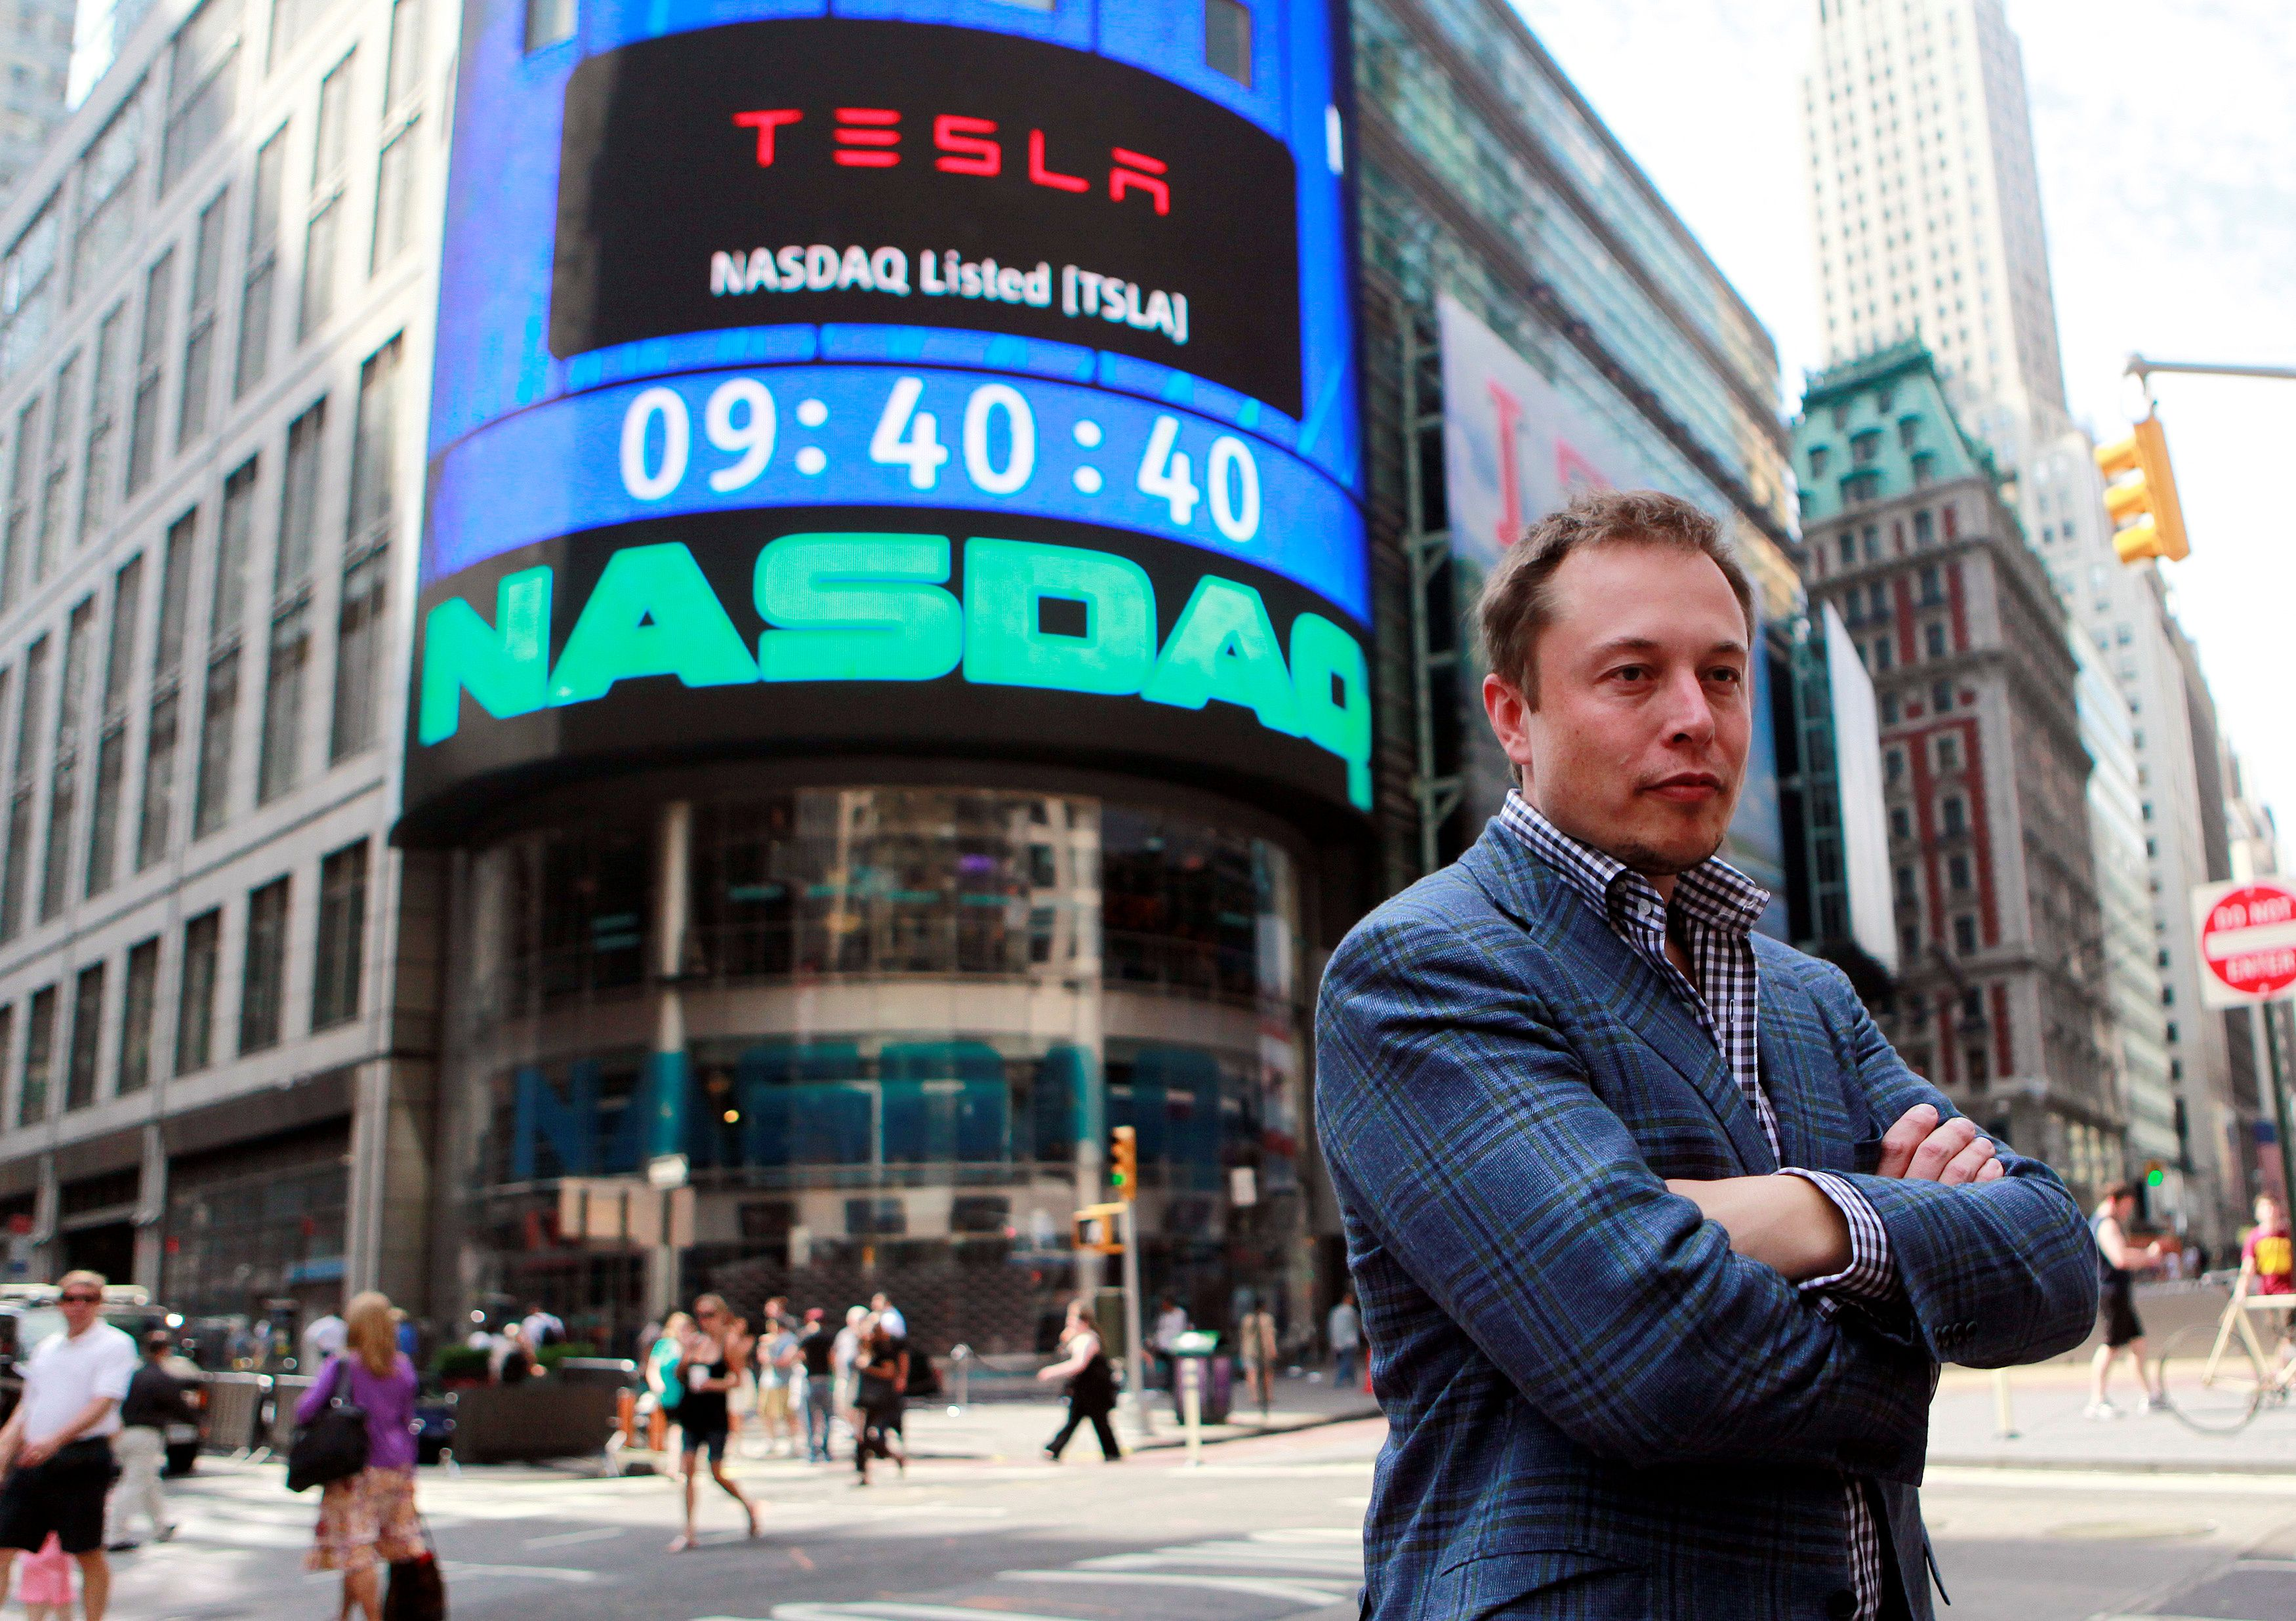 CEO of Tesla Motors Elon Musk poses during a television interview after his company's initial public offering at the NASDAQ market in New York, June 29, 2010. REUTERS/Brendan McDermid